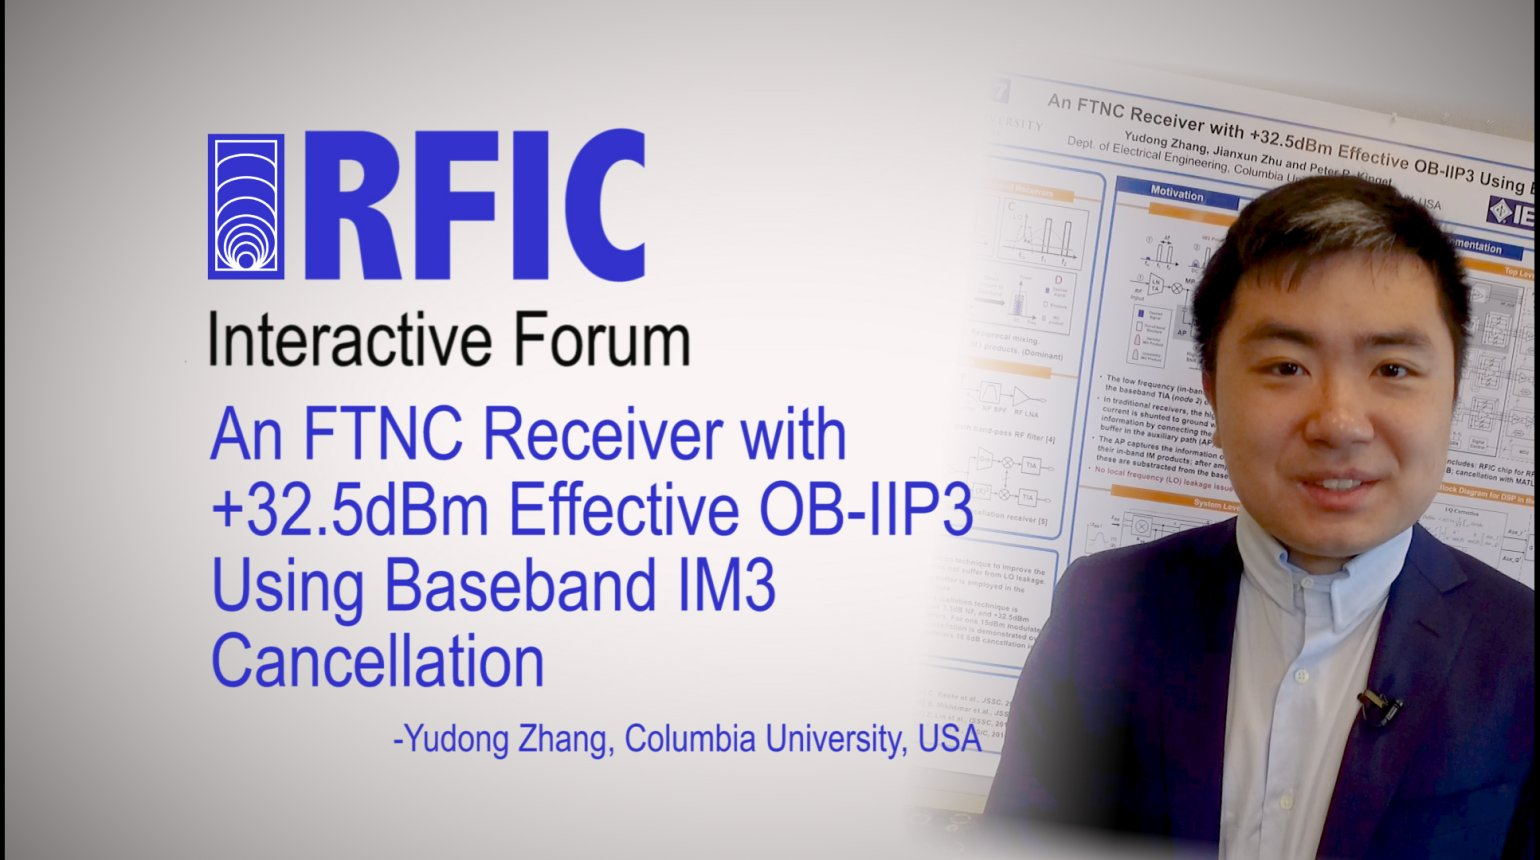 An FTNC Receiver with +32.5dBm Effective OB-IIP3 Using Baseband IM3 Cancellation: RFIC Interactive Forum 2017